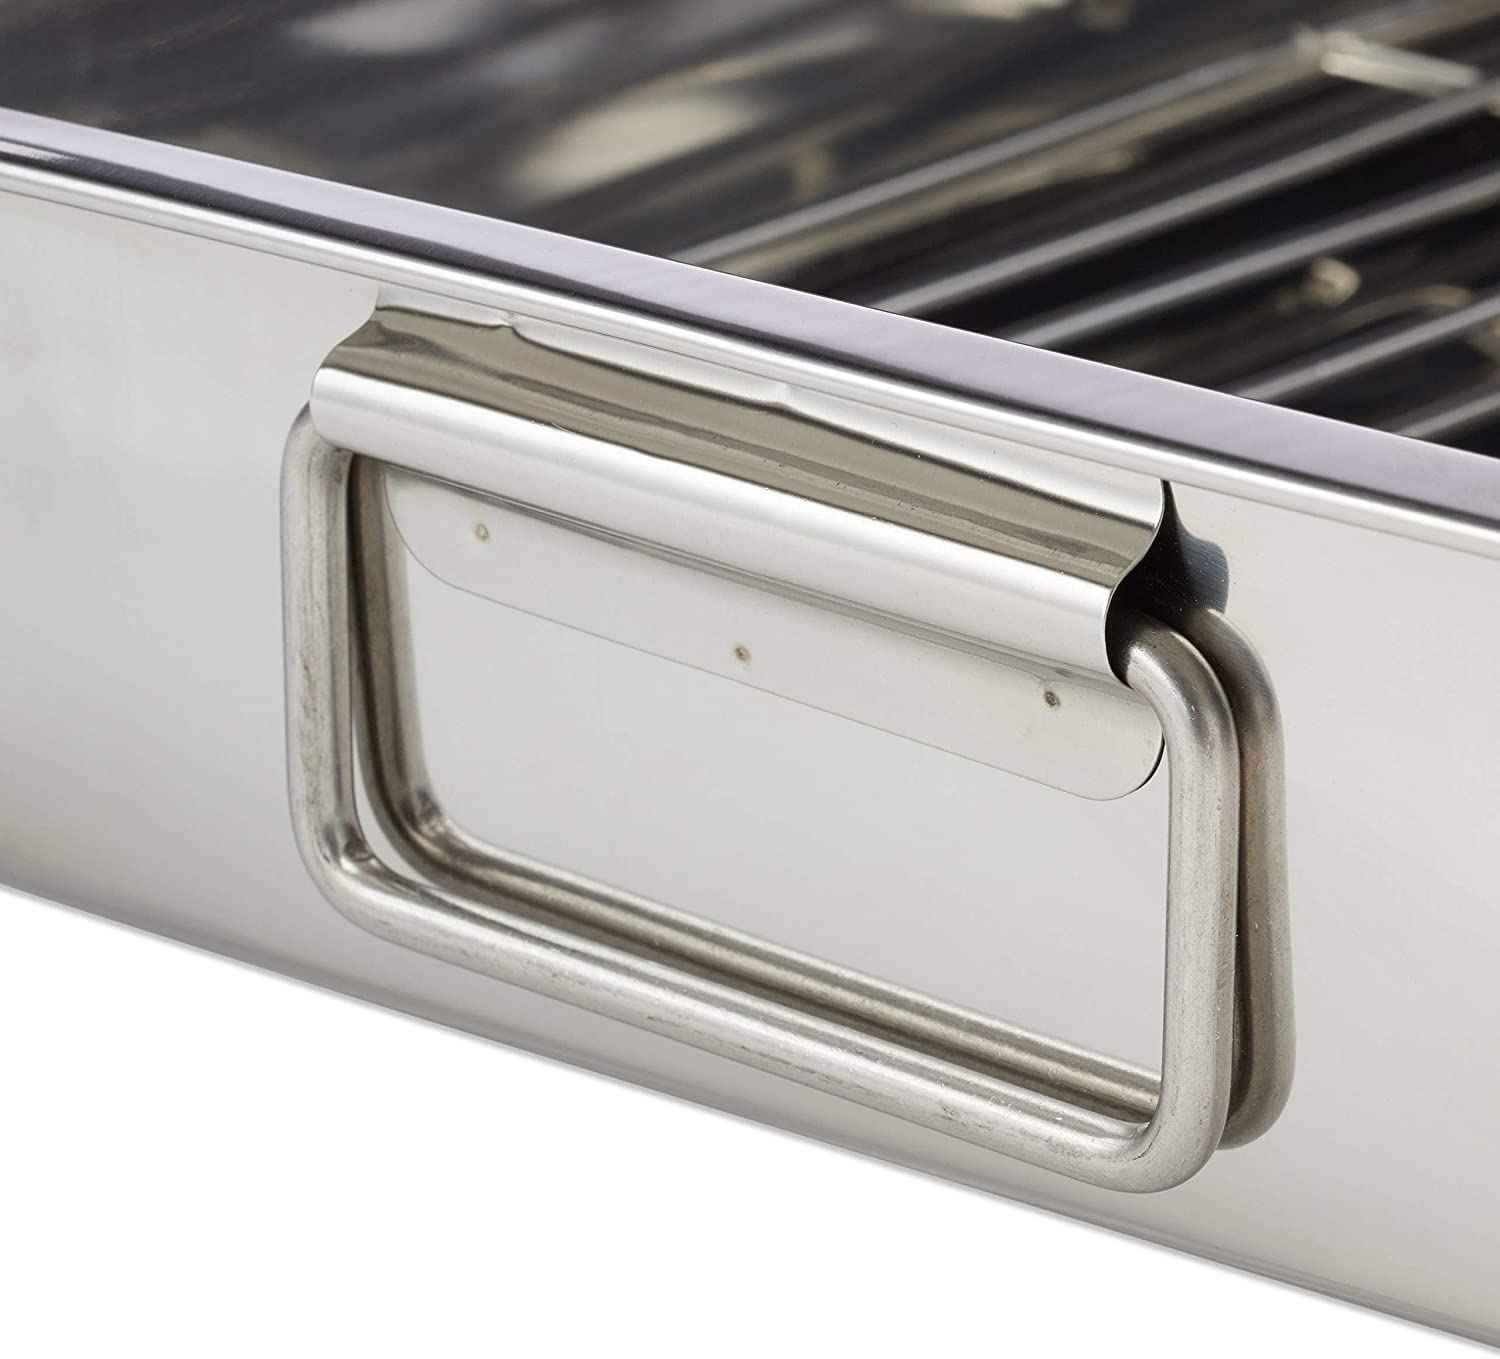 Size S Relaxdays Stainless Steel Roasting Pan Oven Dish Dishwasher-Safe Silver